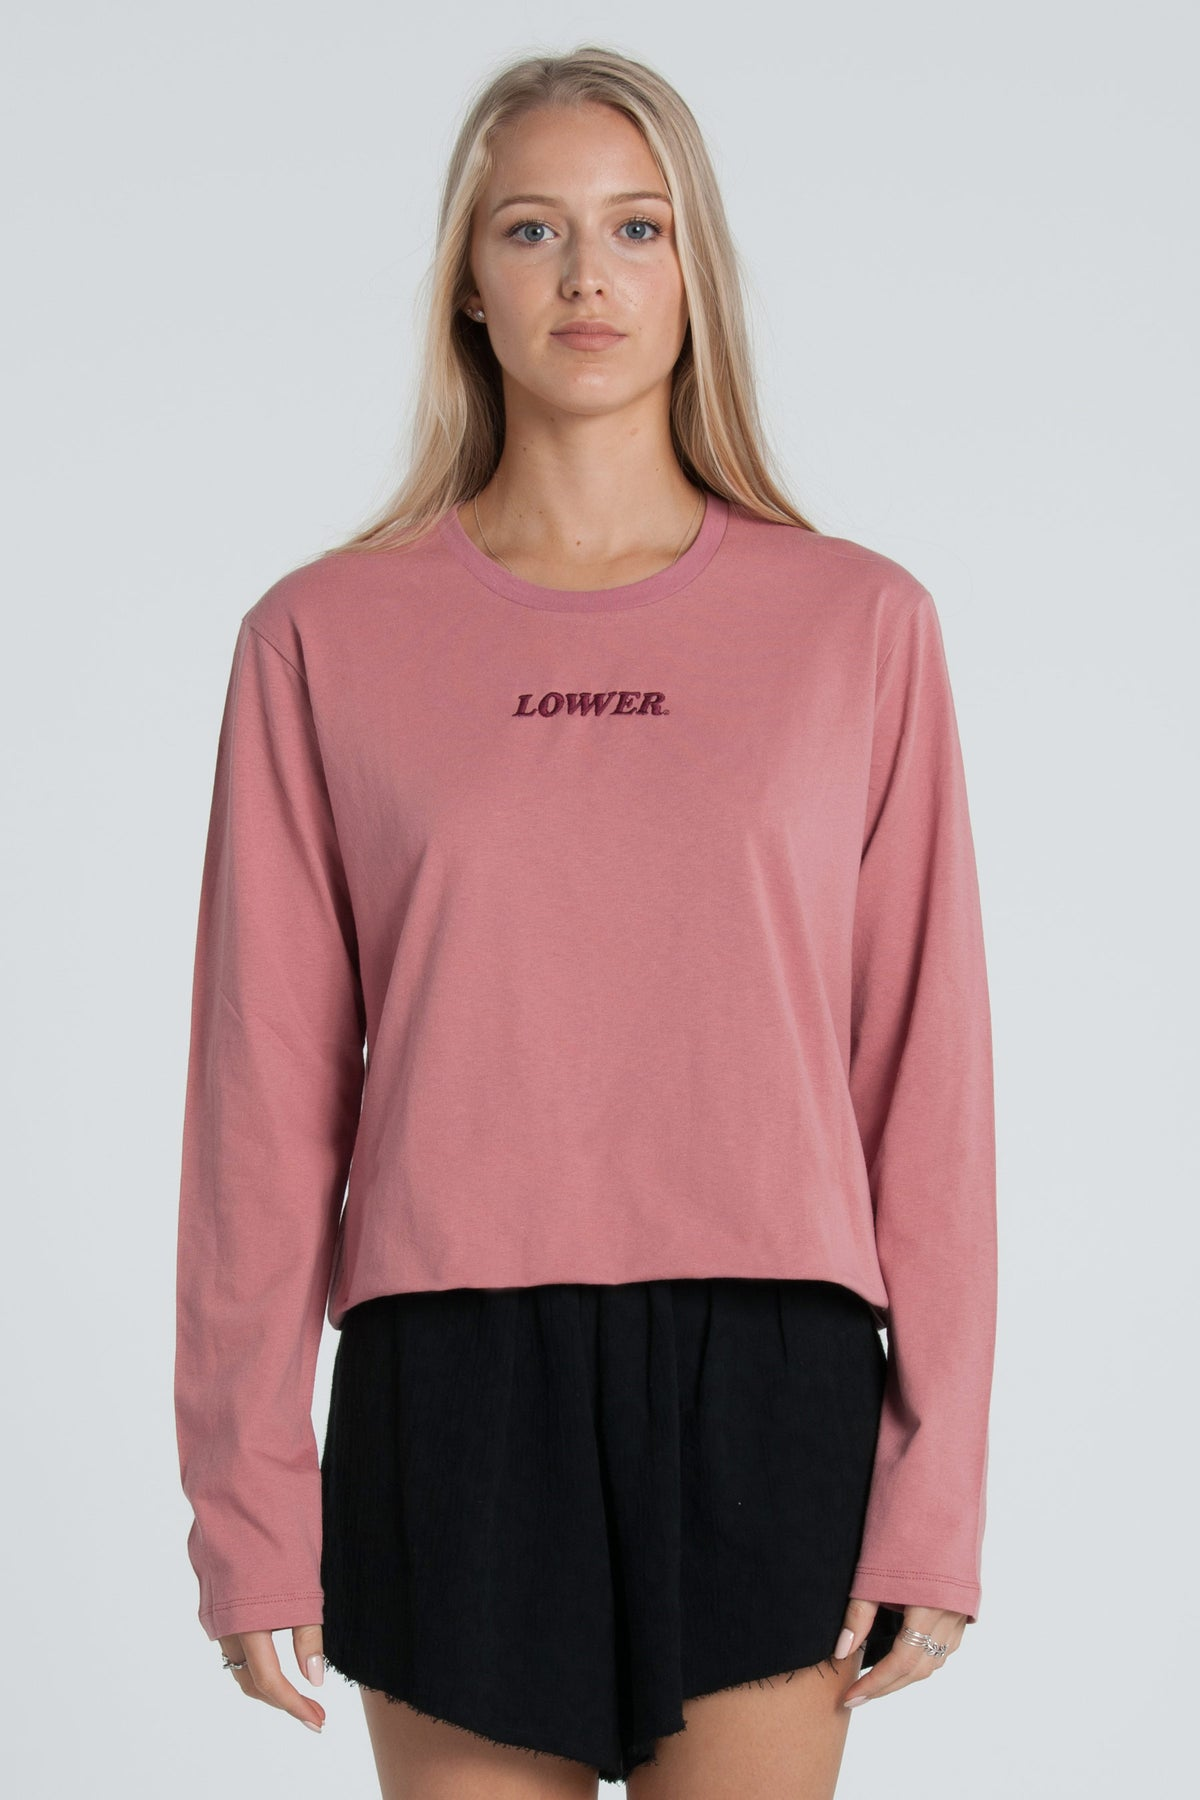 Cherry Ripe Cropped LS Tee - Rose